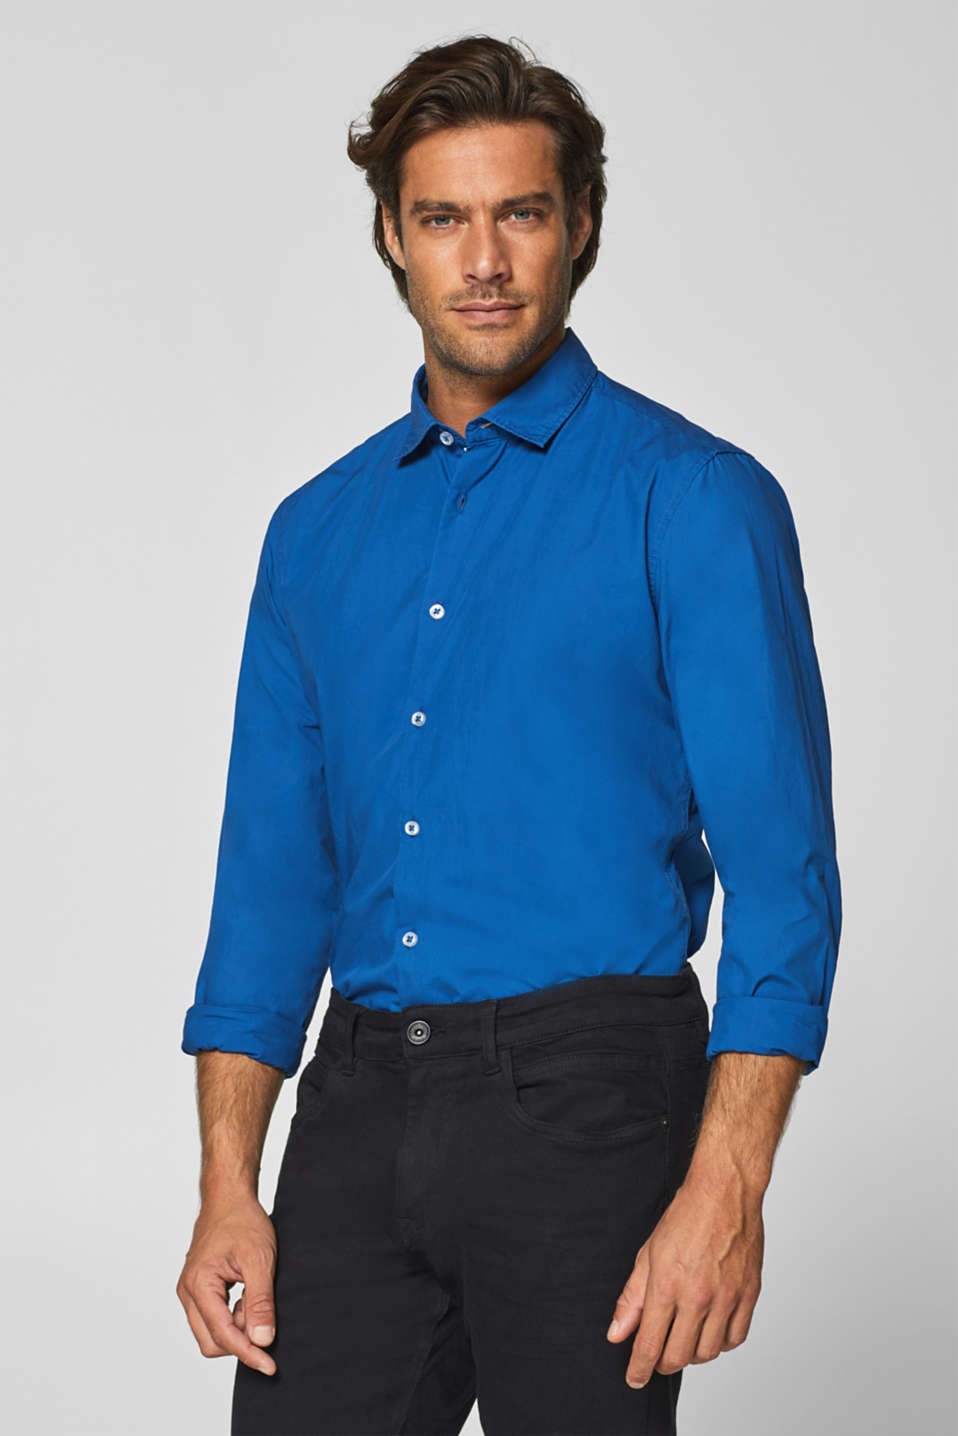 Esprit - Easy-iron shirt in 100% cotton